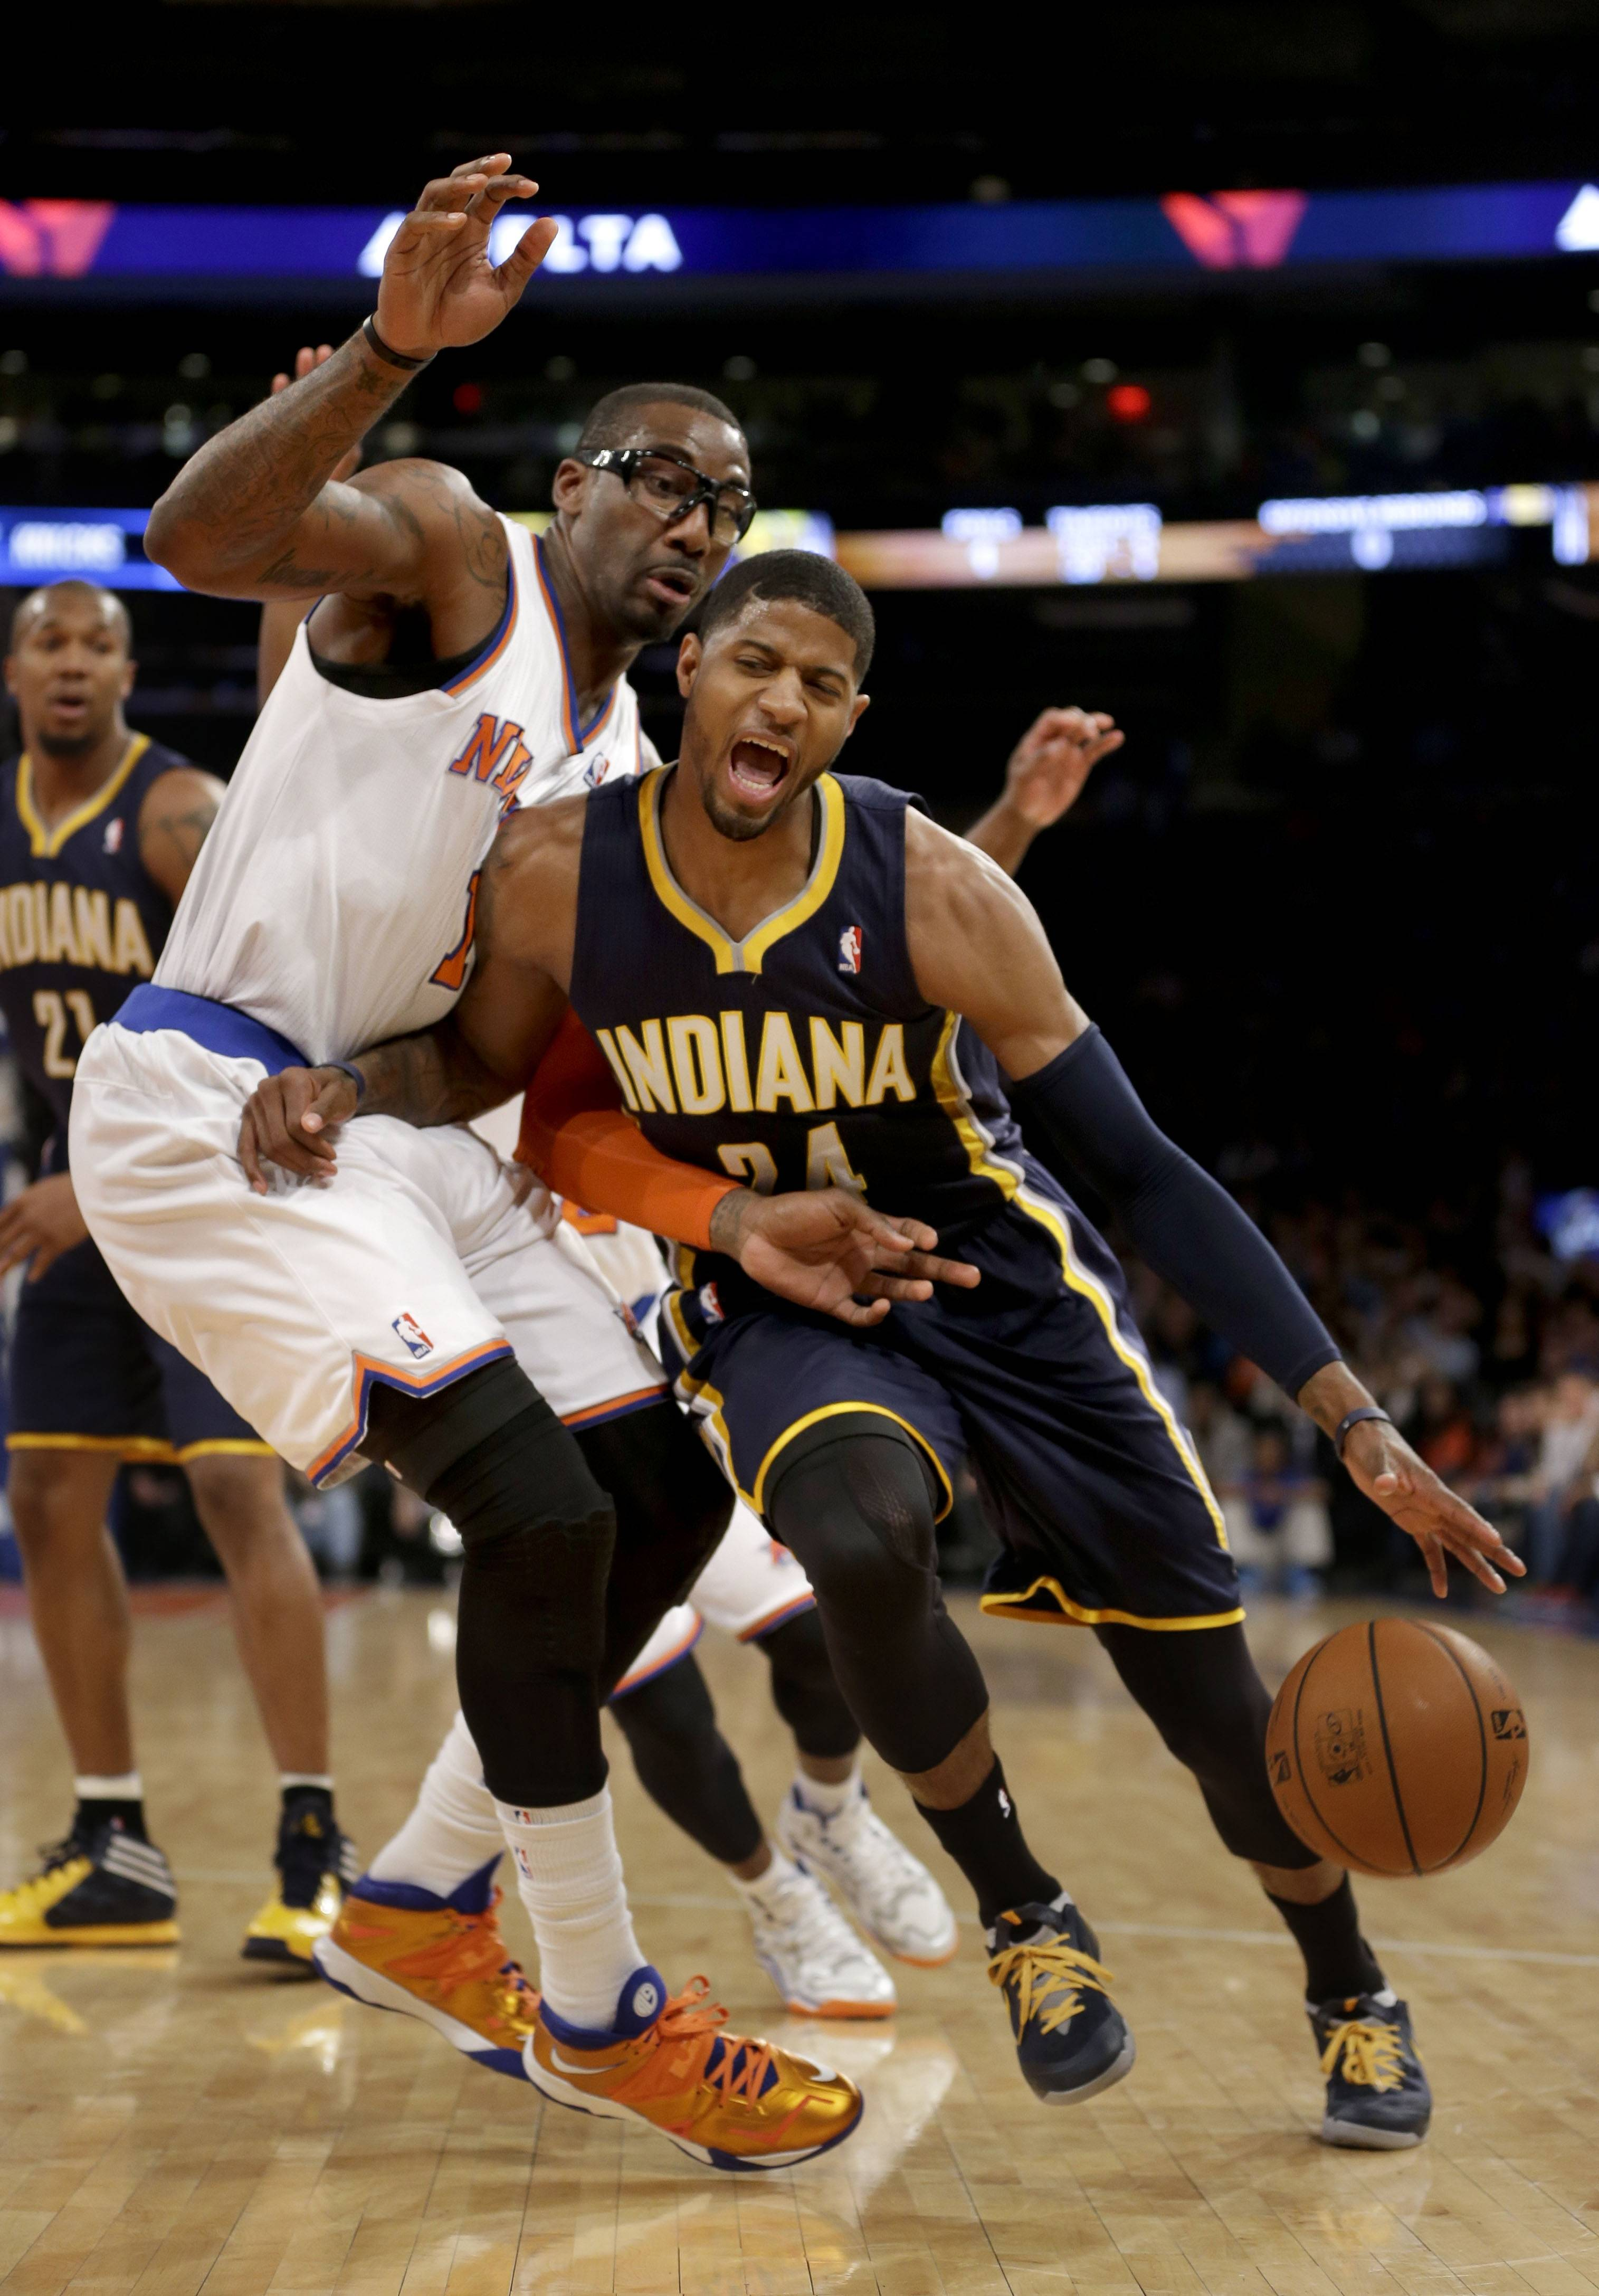 Associated Press Indiana Pacers' Paul George, right, pushes past New York Knicks' Amare Stoudemire during the first half at Madison Square Garden.